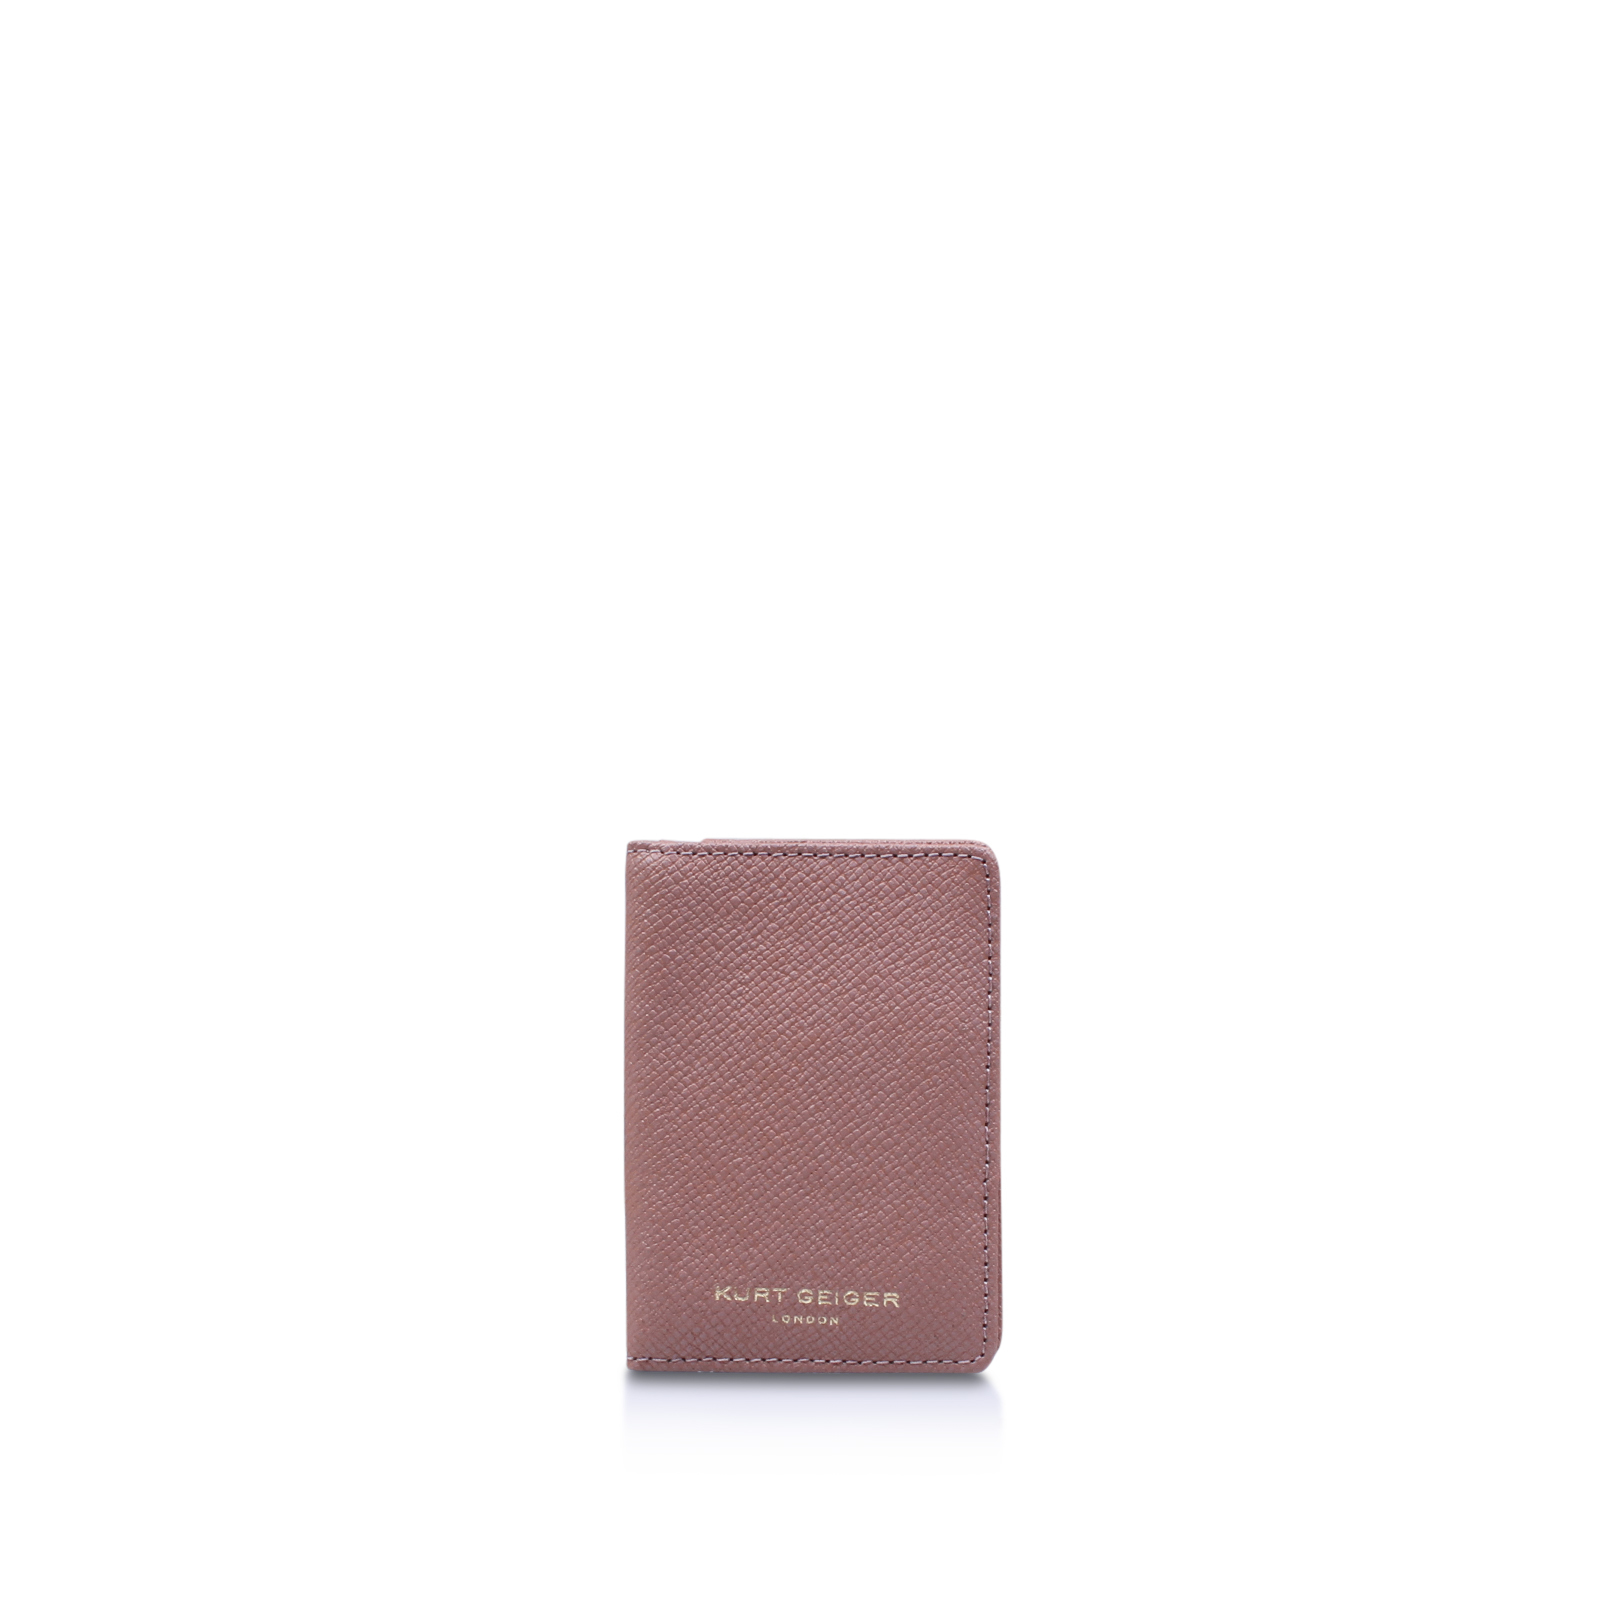 NEW SAF TRAVEL CARDHOLDER